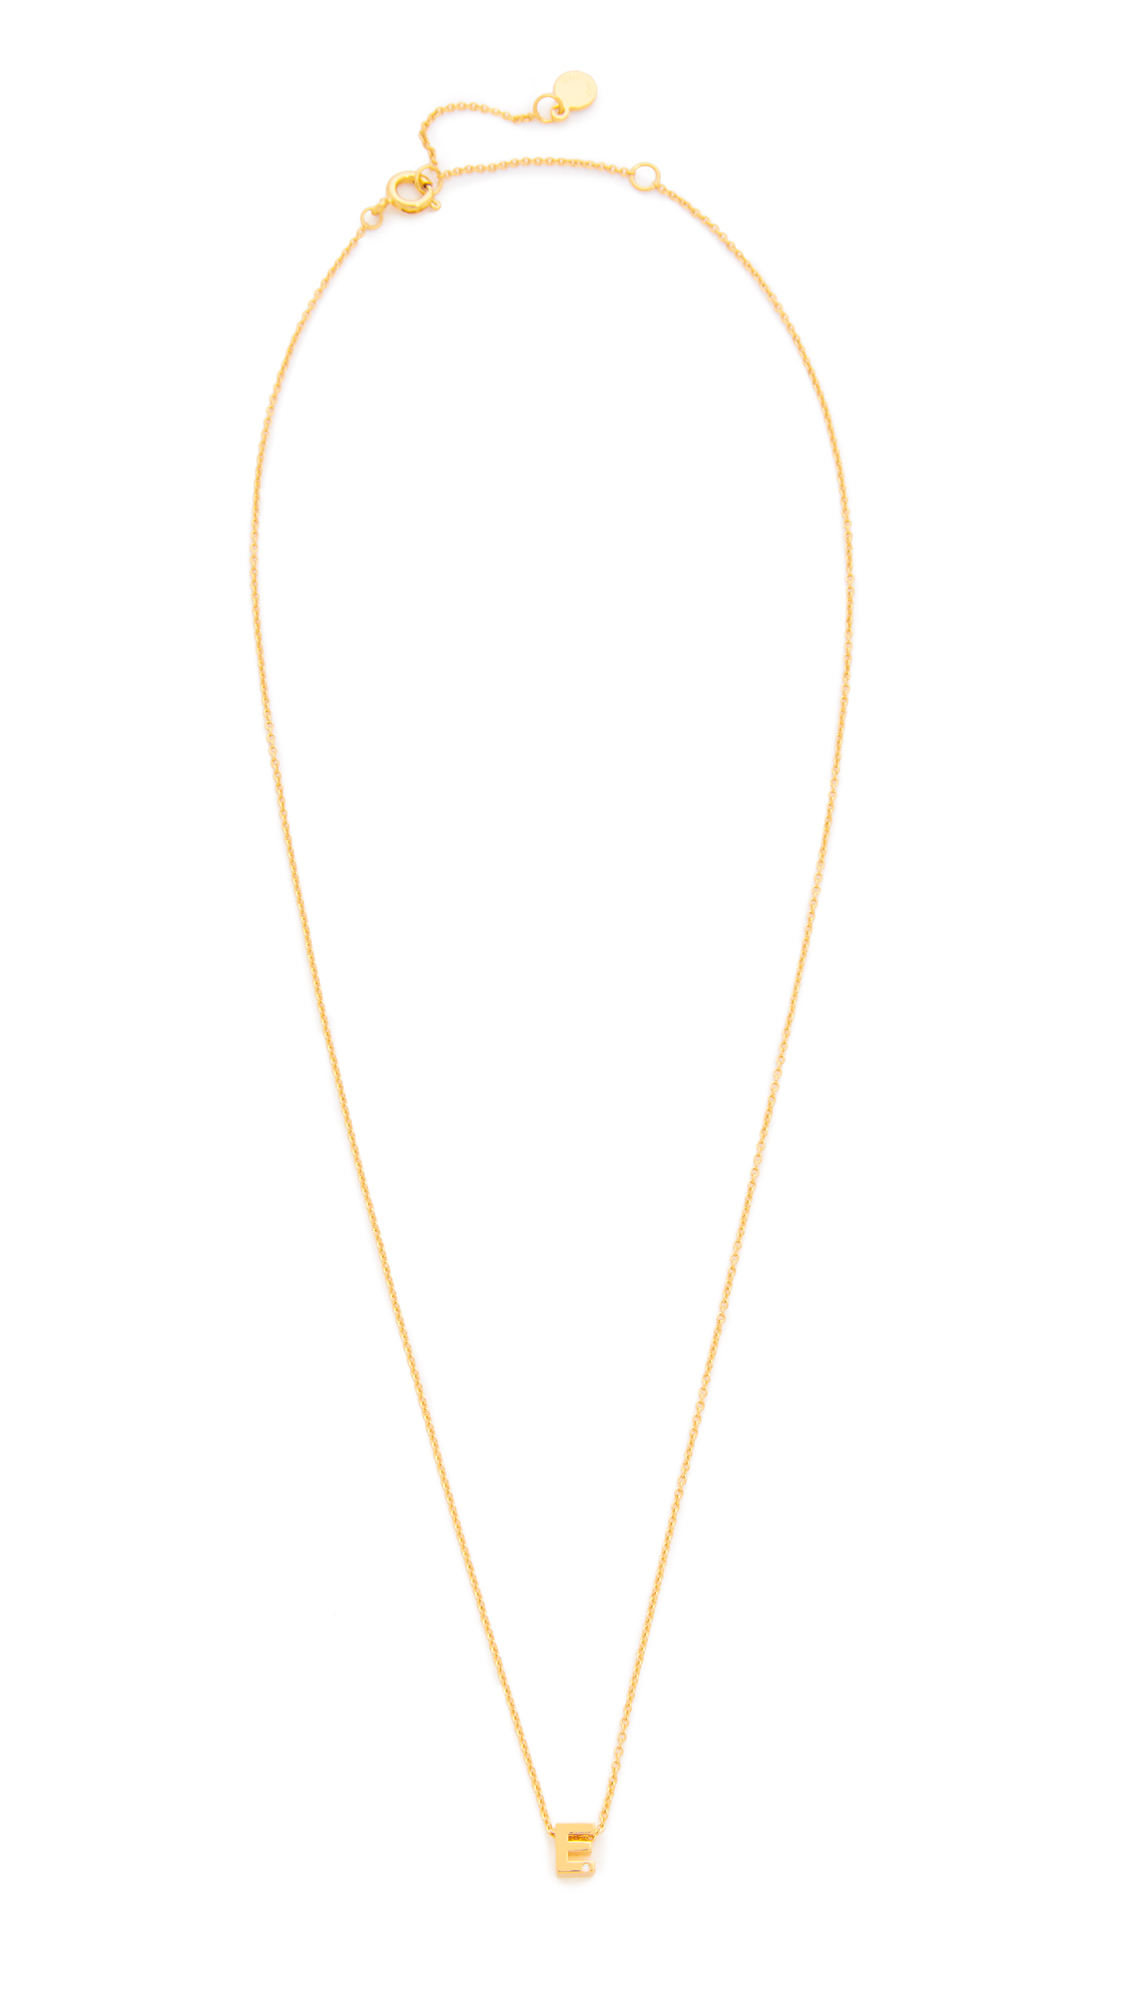 Lyst  Gorjana Shimmer Block Letter Necklace In Metallic